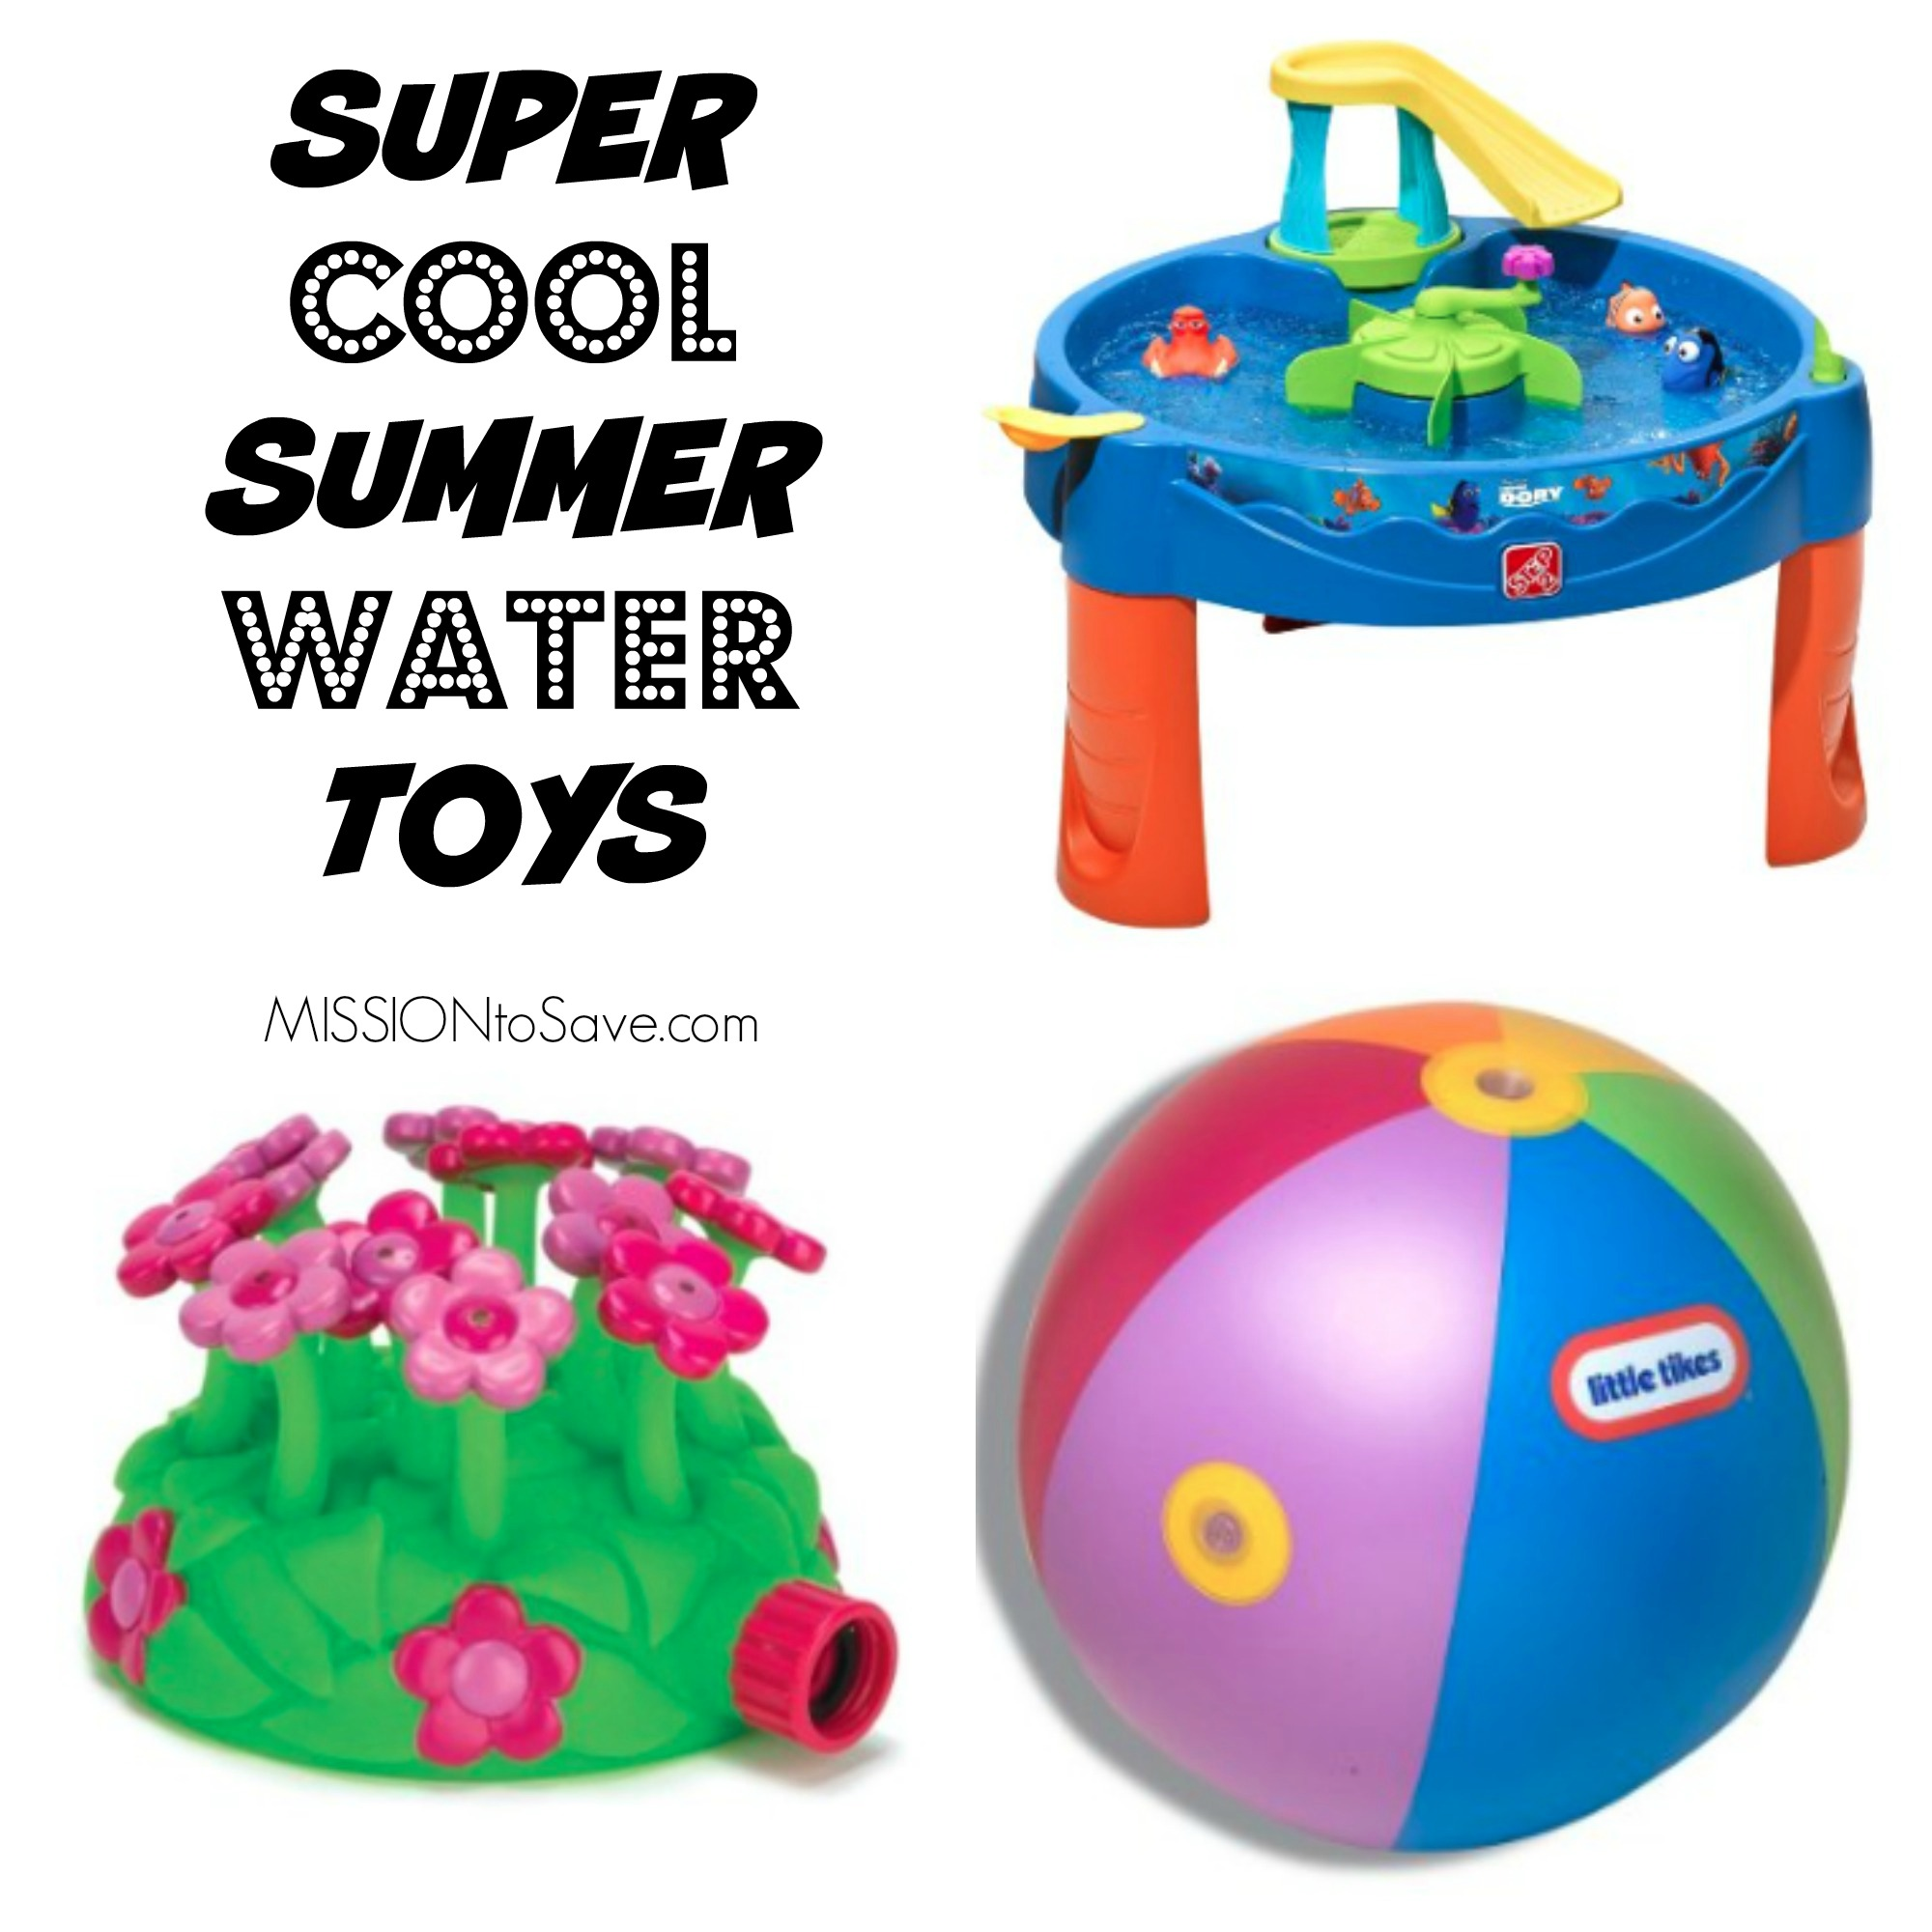 Amazon Highly Rated Sprinklers and Water Toys Mission to Save